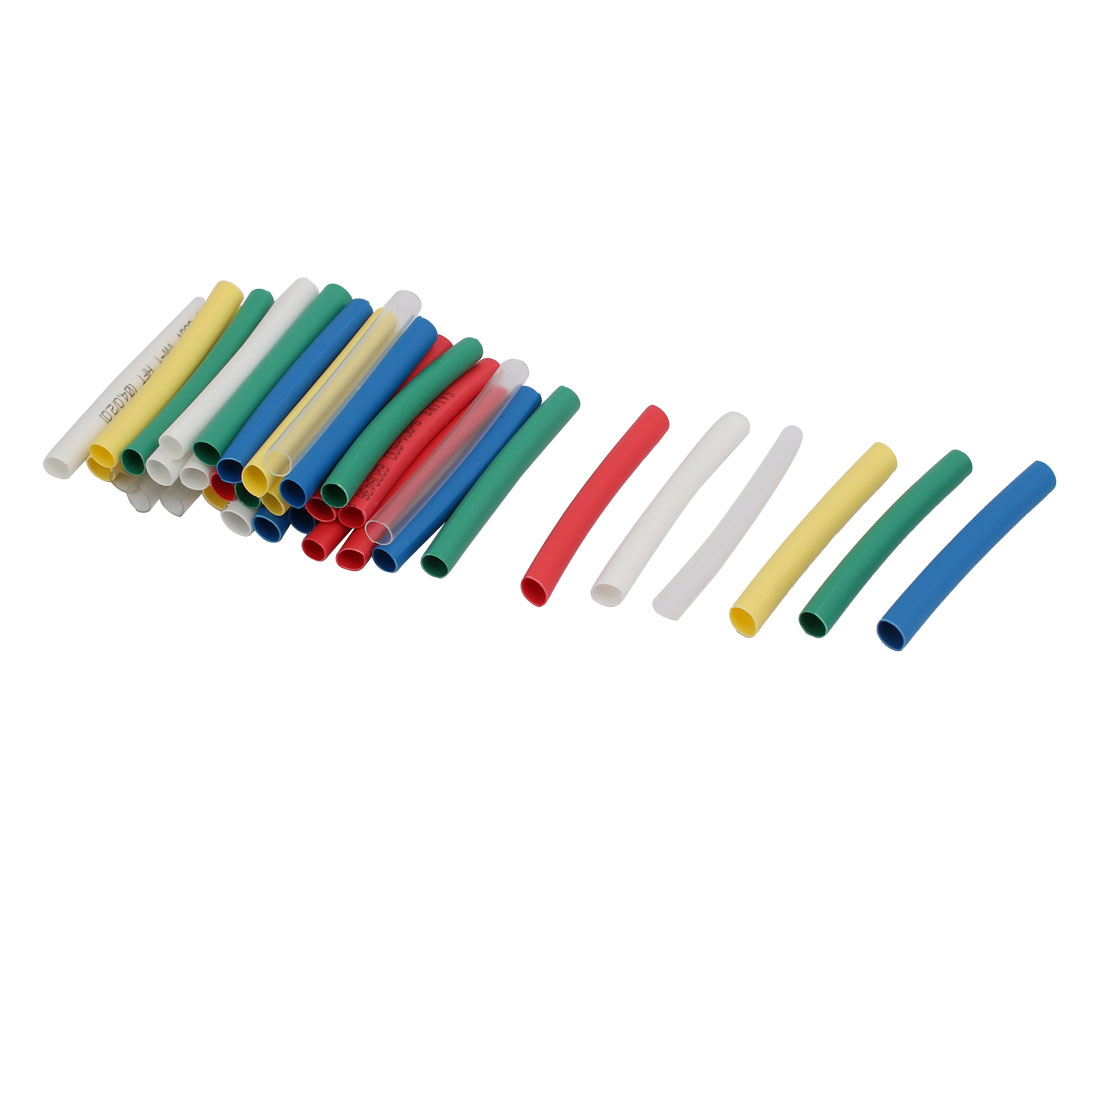 4mmx45mm Multi-Colors Insulated Heat Shrink Tube Sleeving Wrap Wire Kits 210pcs